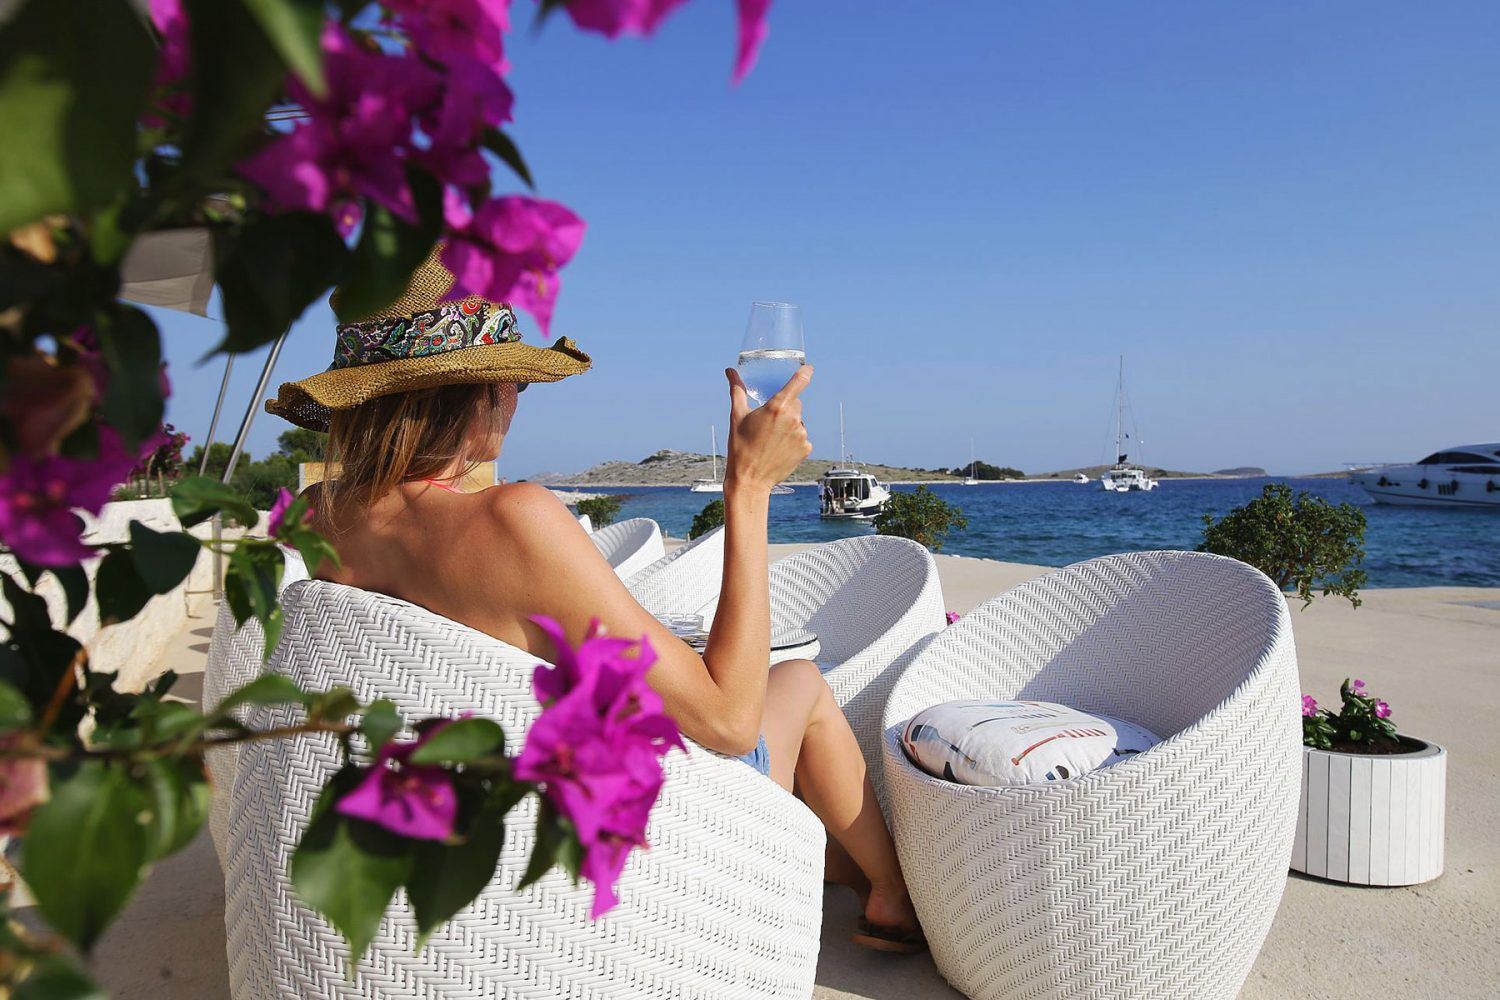 Archipelago Tours Custom Made Tours Exclusive Charter photo of a woman sitting in a lounge chair, holding wine glass and looking at the sea